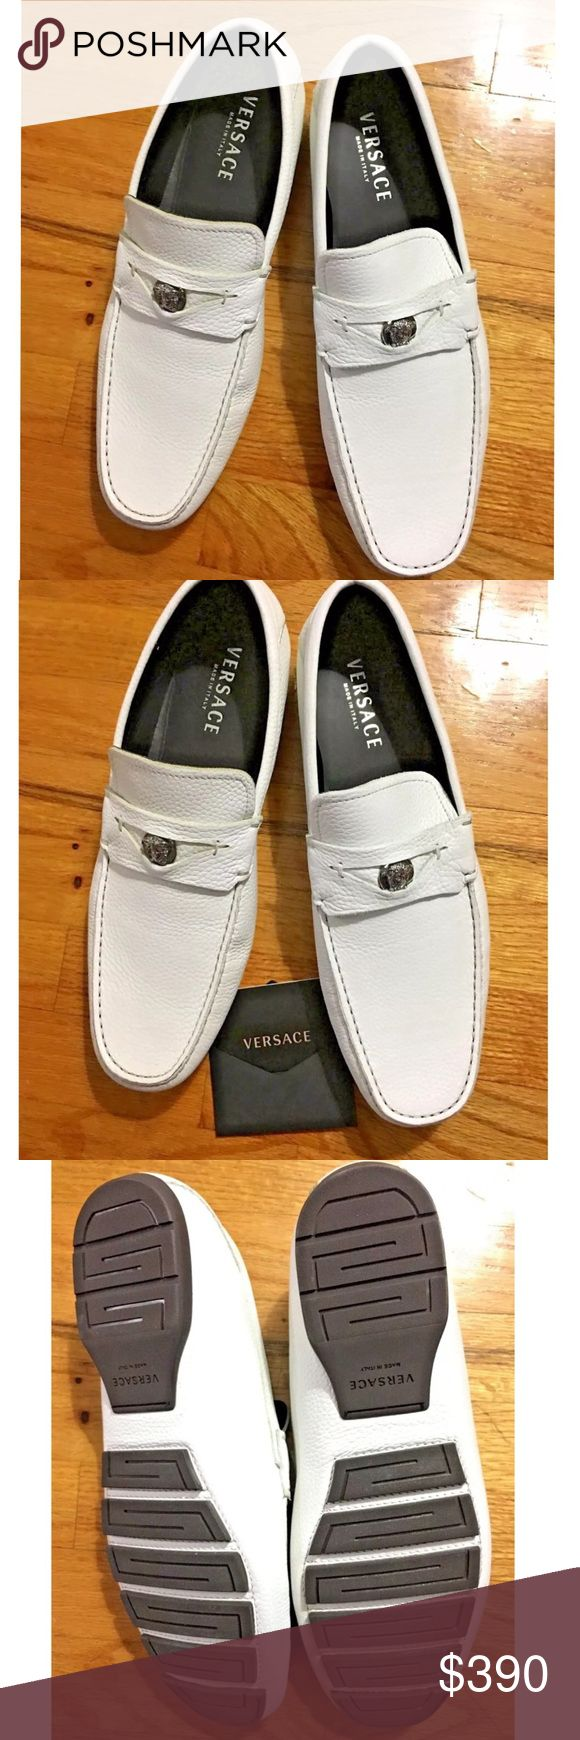 Versace Men's White Loafer Leather Shoes Sz 12 Versace Men's White Loafer Leather Italy Car Shoes US Sz 12 Euro Sz 45 Driving Moccasins Leather Material Made in Italy Retail $525 Versace Shoes Loafers & Slip-Ons